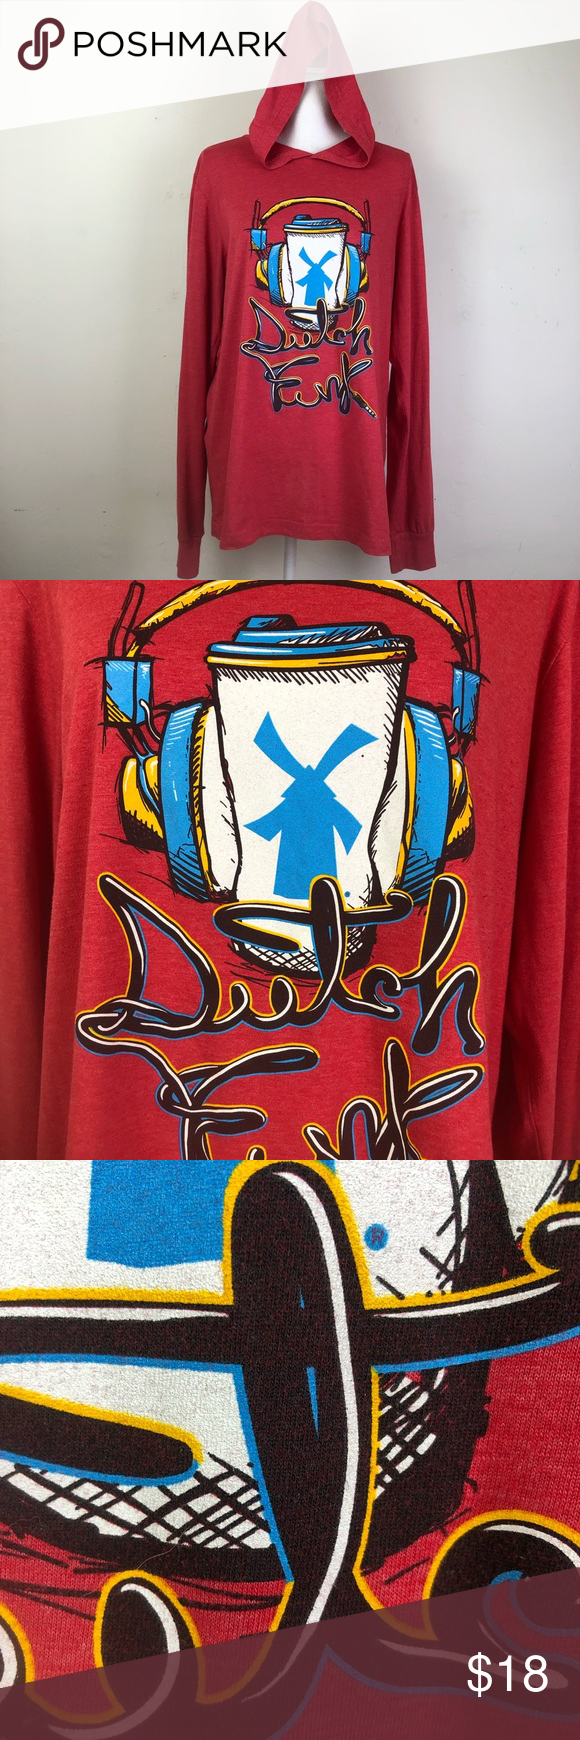 Dutch Bros Light Weight Hooded Long Sleeve TShirt Dutch Bros Light Weight Hooded Long Sleeve TShirt Graphic Tee size Large in excellent condition Dutch Bros. Shirts Tees - Long Sleeve #dutchbros